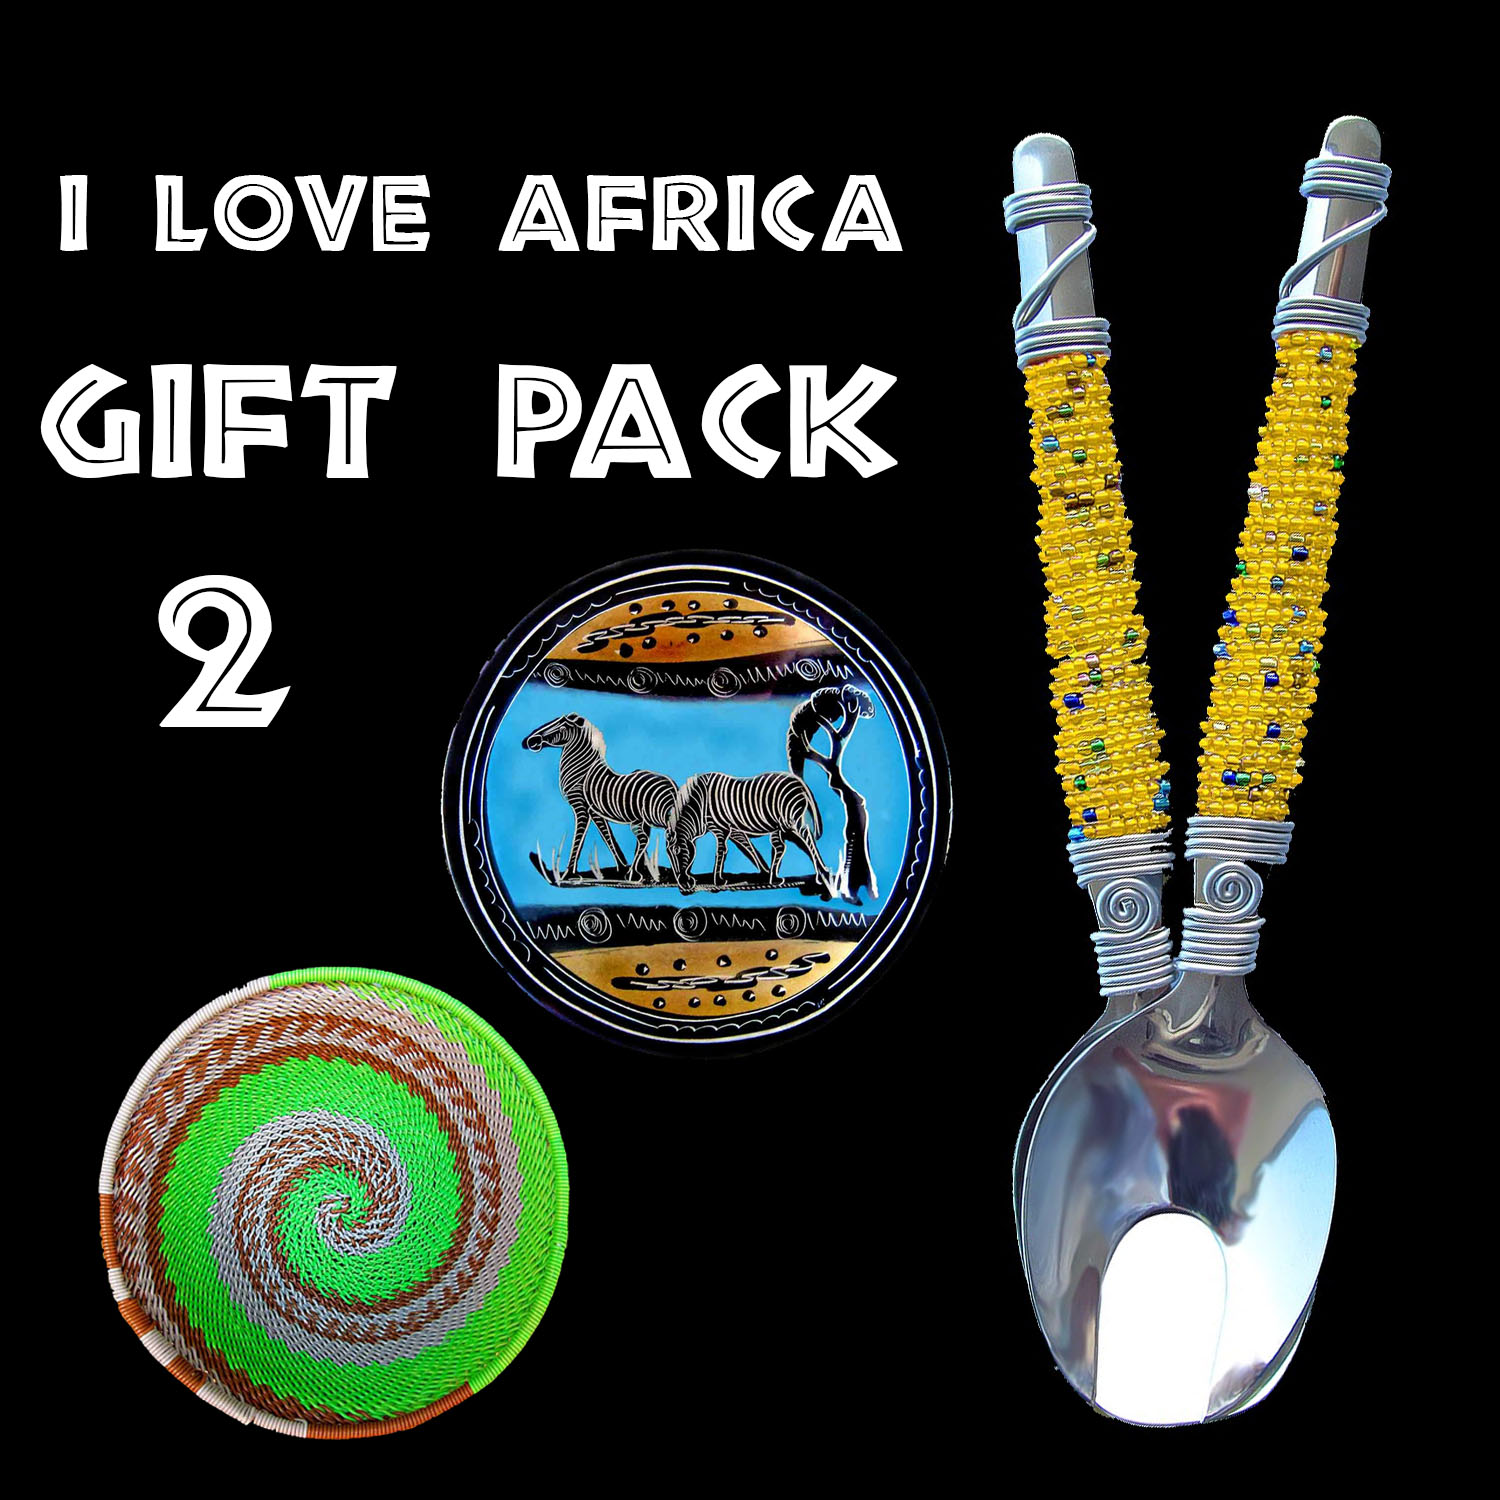 I LOVE AFRICA GIFT PACKS